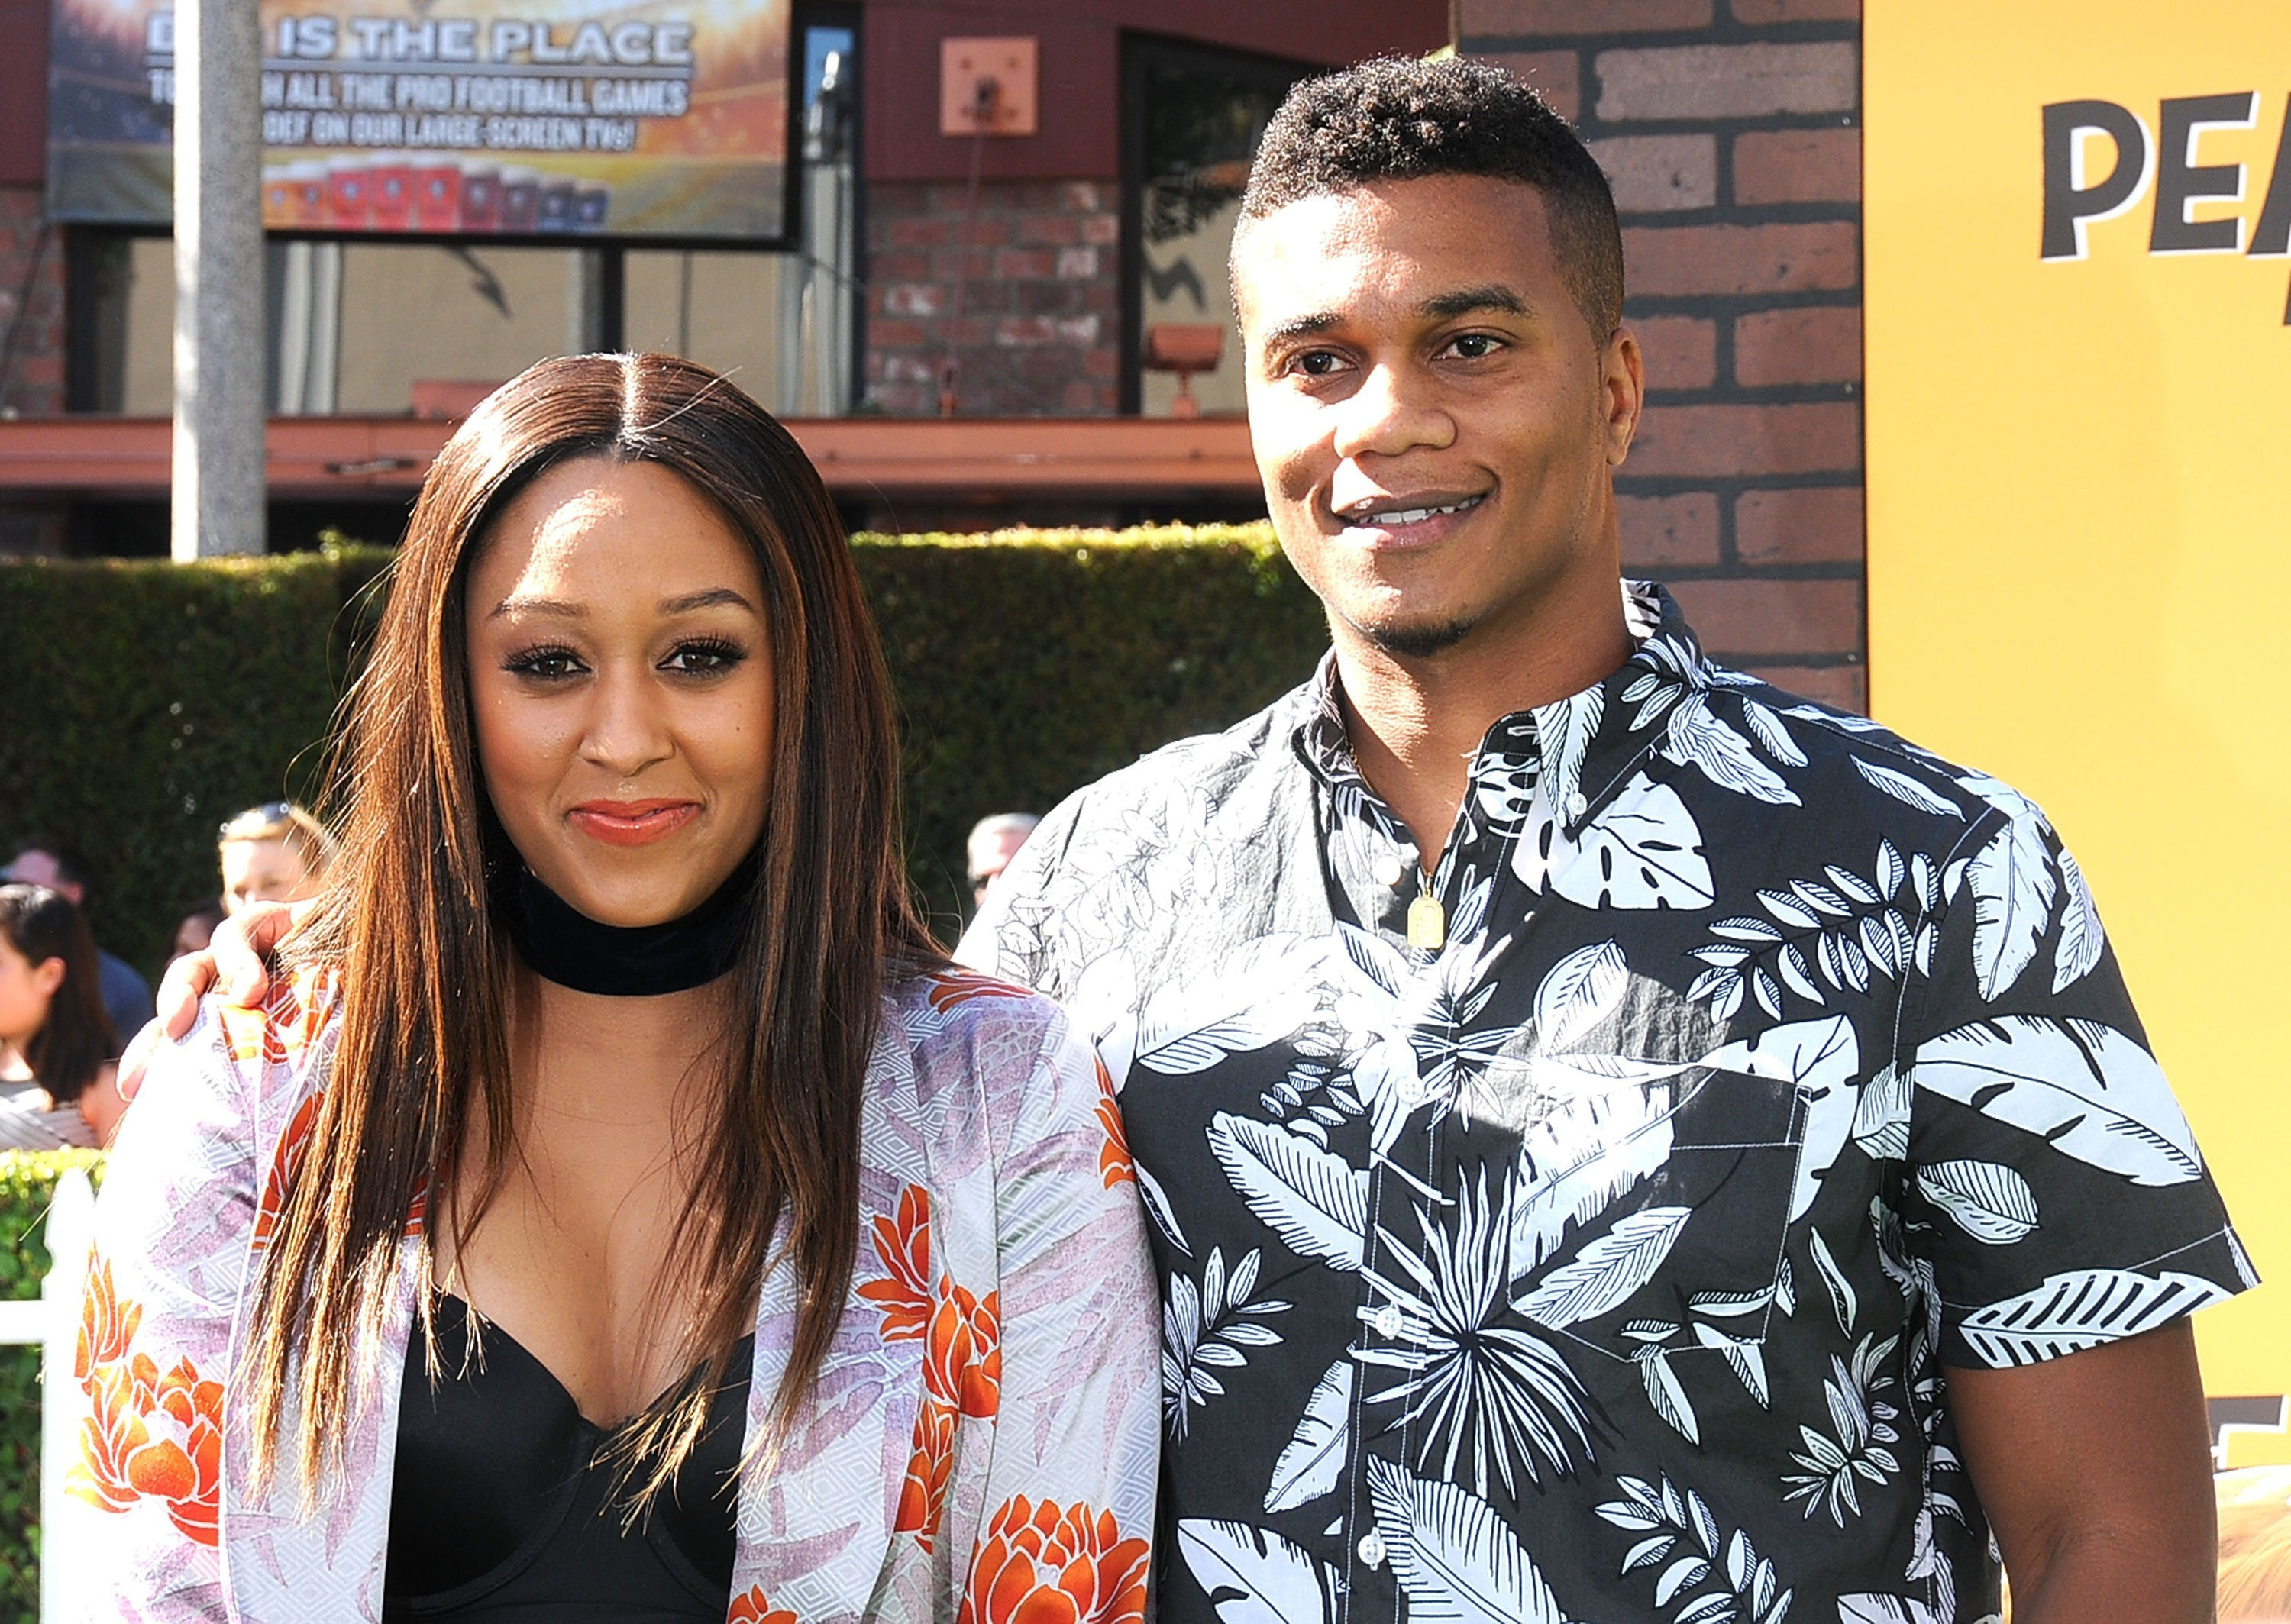 Tia Mowry and her husband Cory Hardrict | Photo: Getty Images